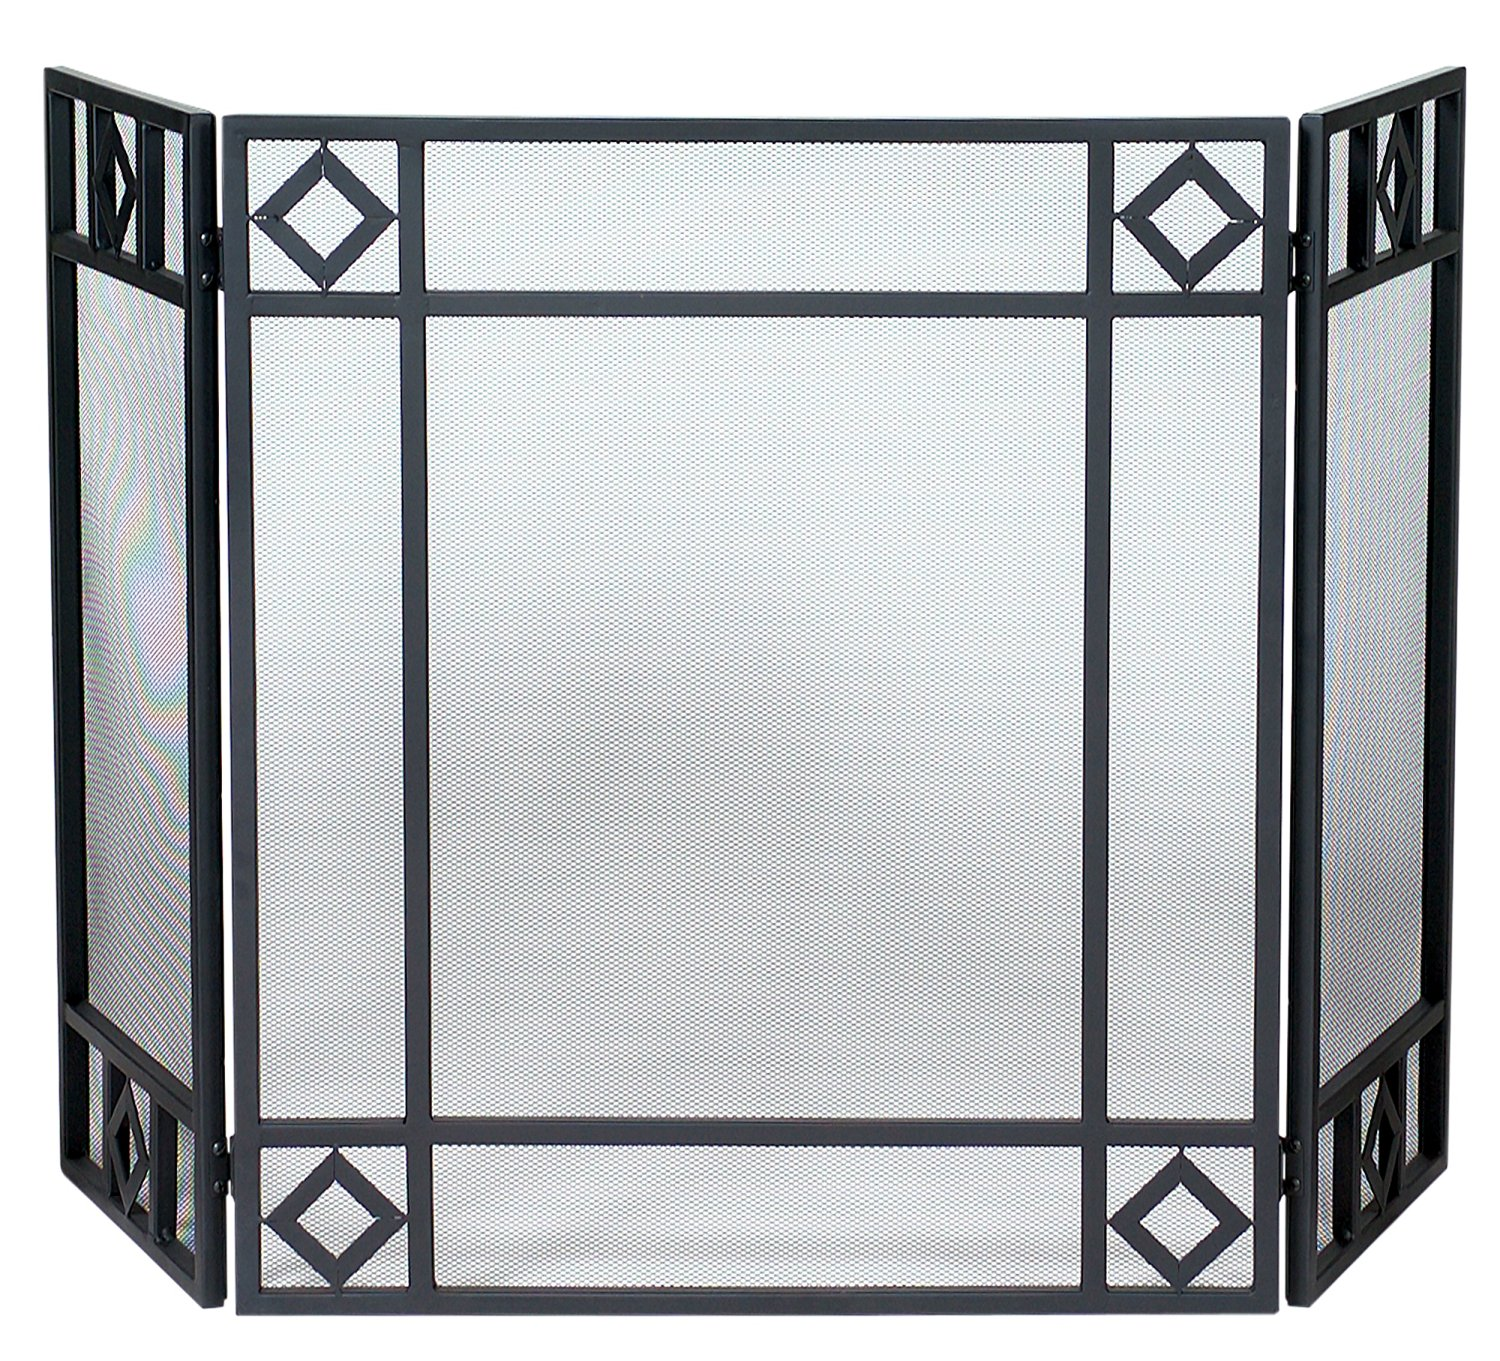 Uniflame 3 Fold Black Wrought Iron Screen - Black - Wrought Iron